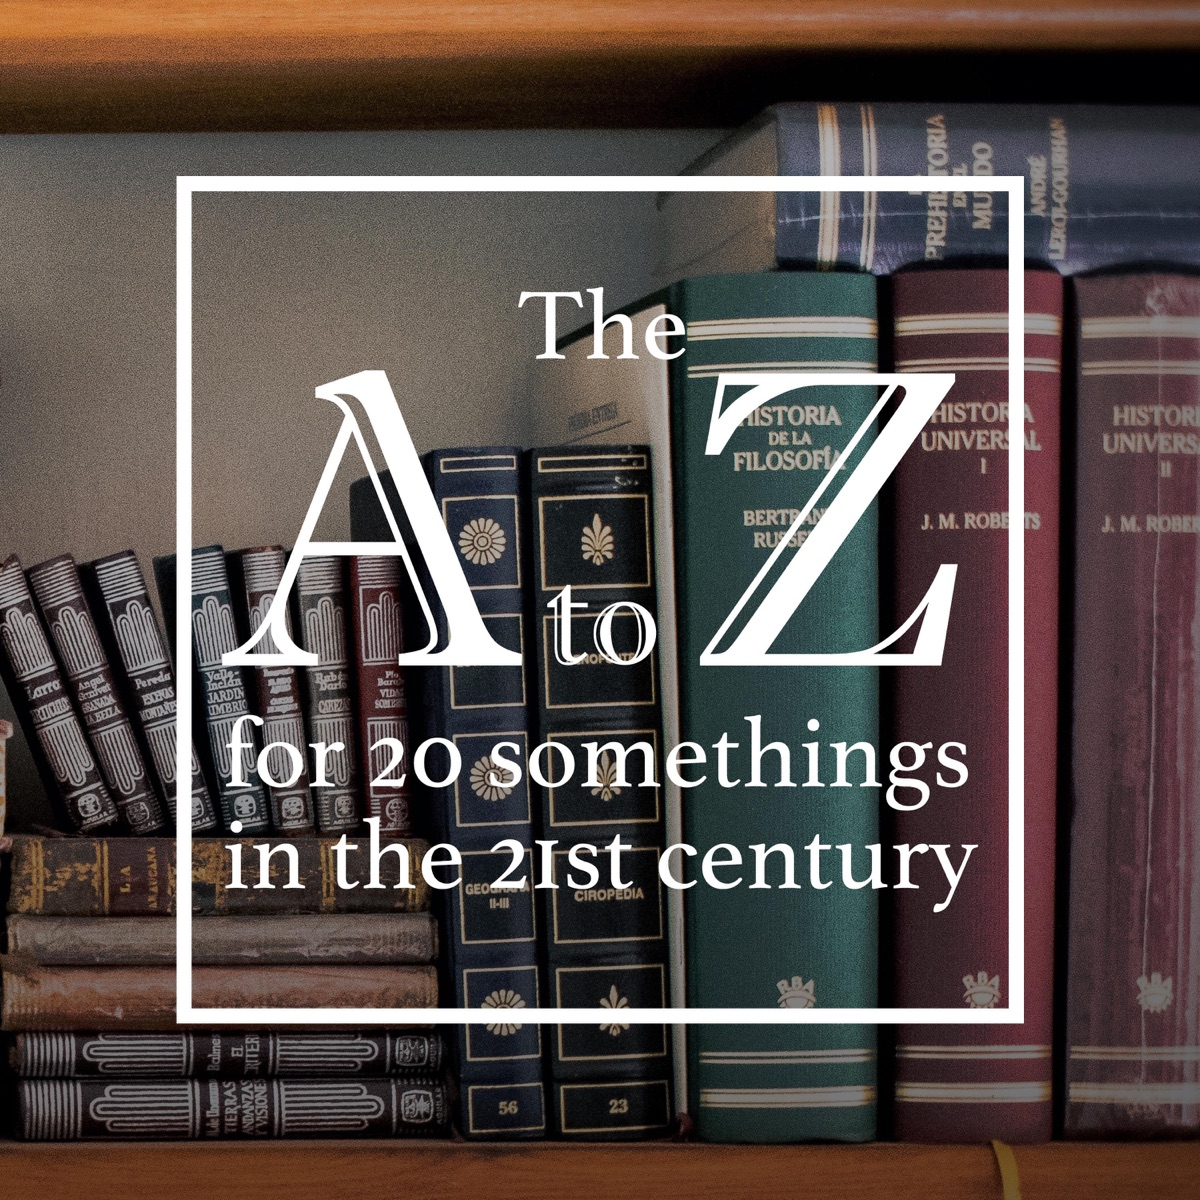 A to Z for 20 Somethings in the 21st Century